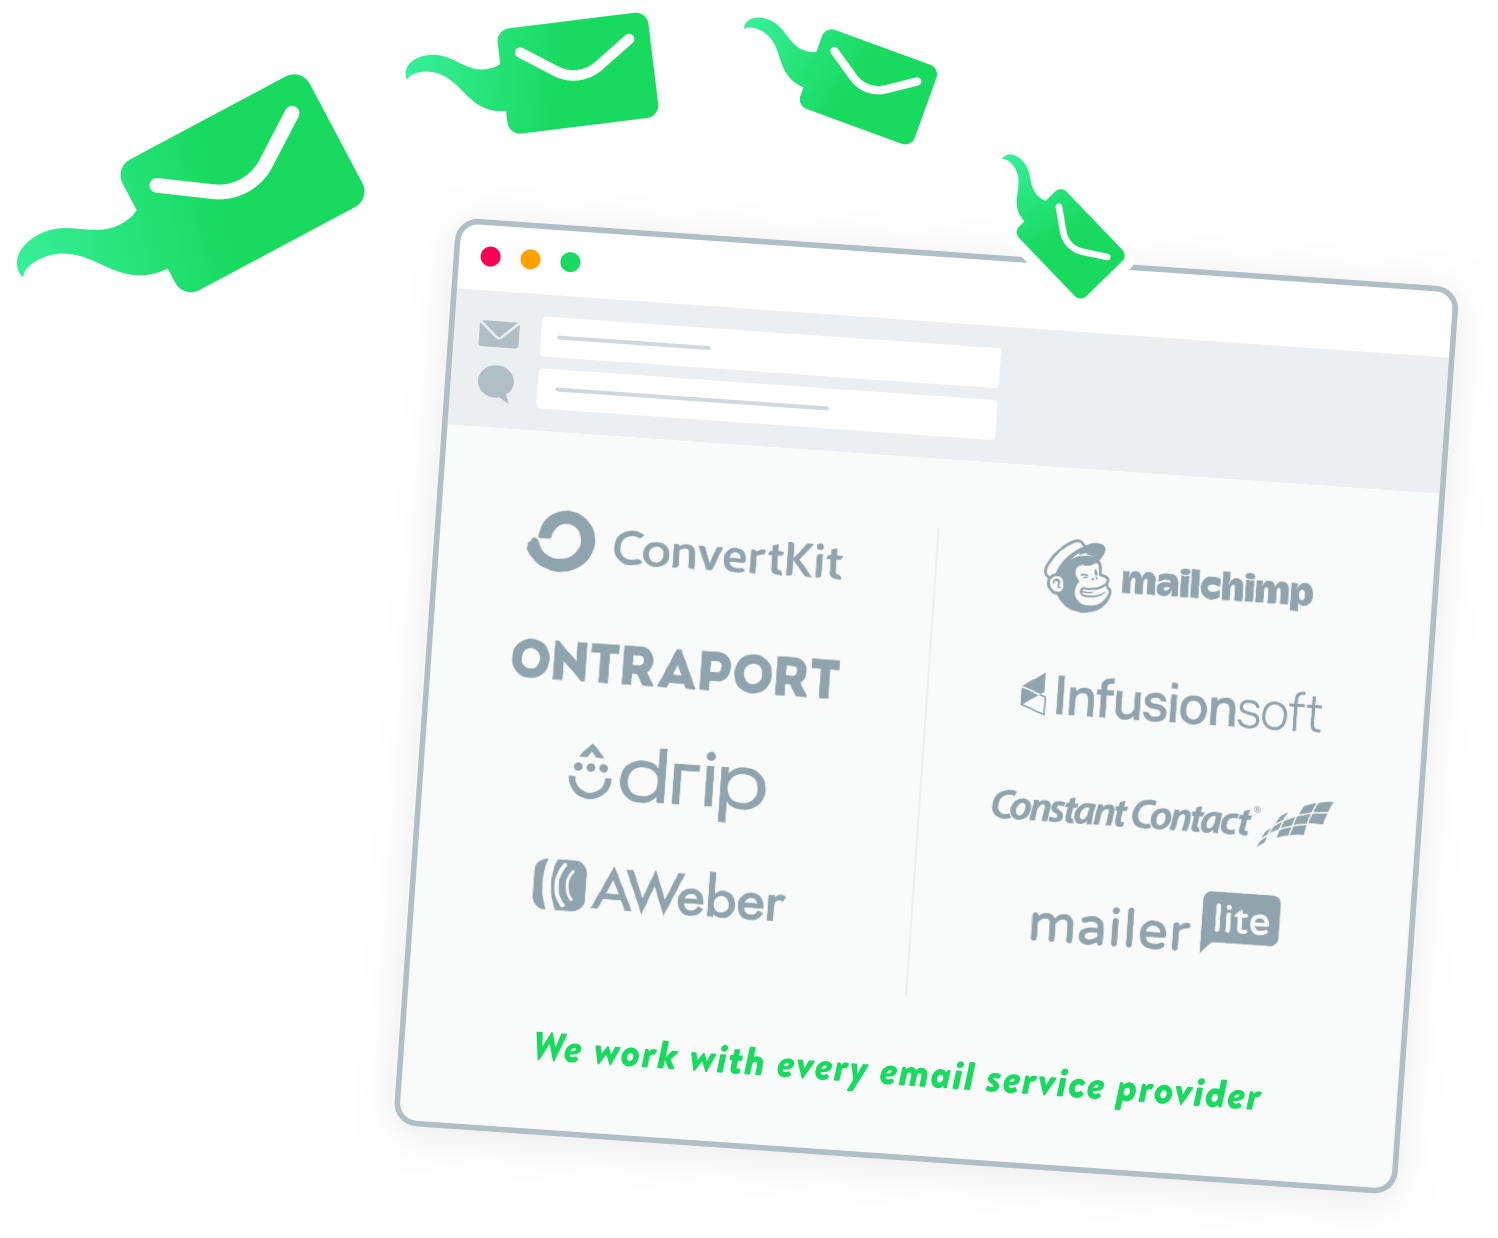 Drip Scripts works with every email service provider.